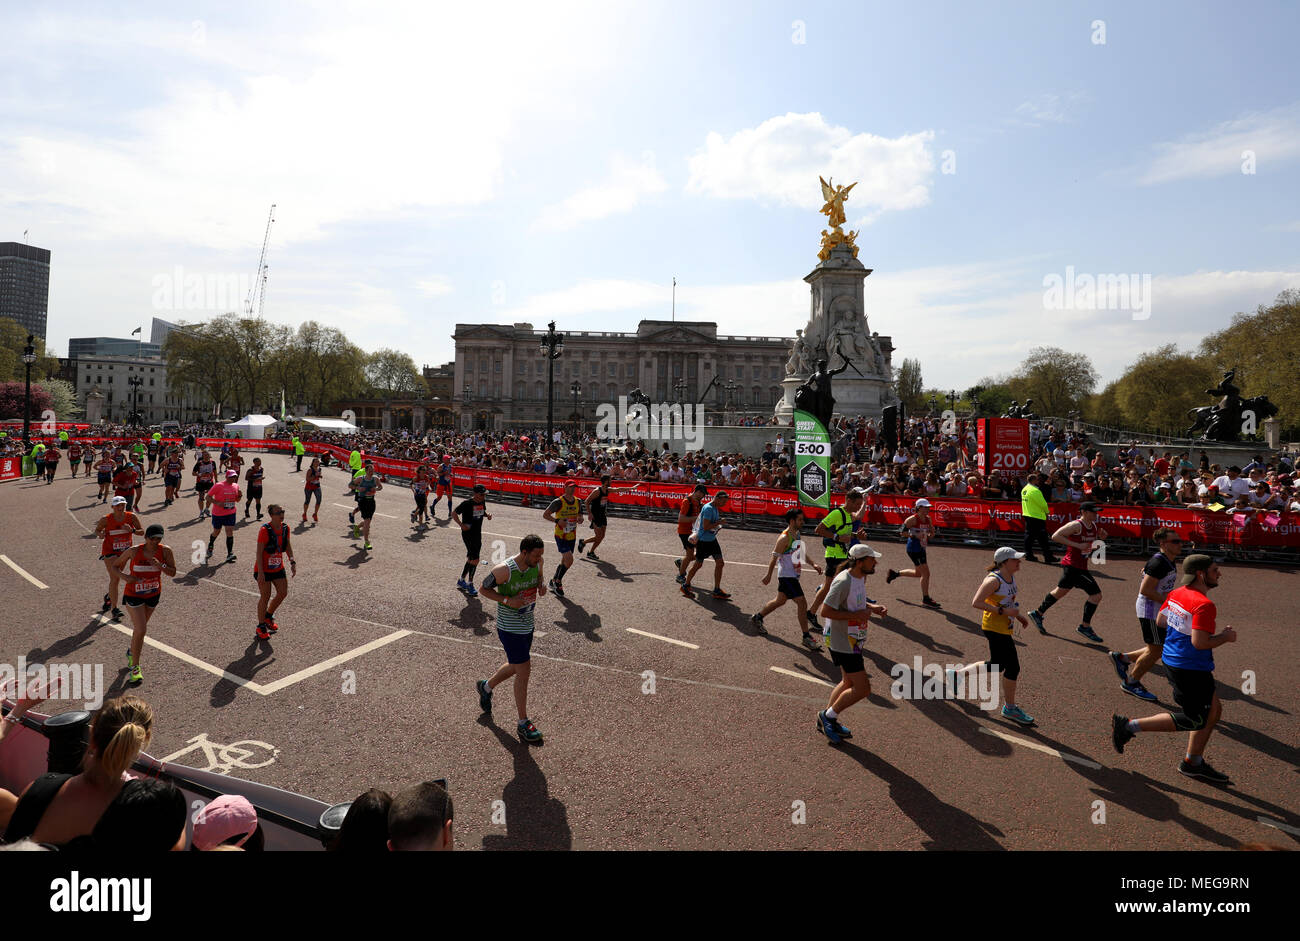 Runners go past Buckingham Palace during the 2018 Virgin Money London Marathon. - Stock Image